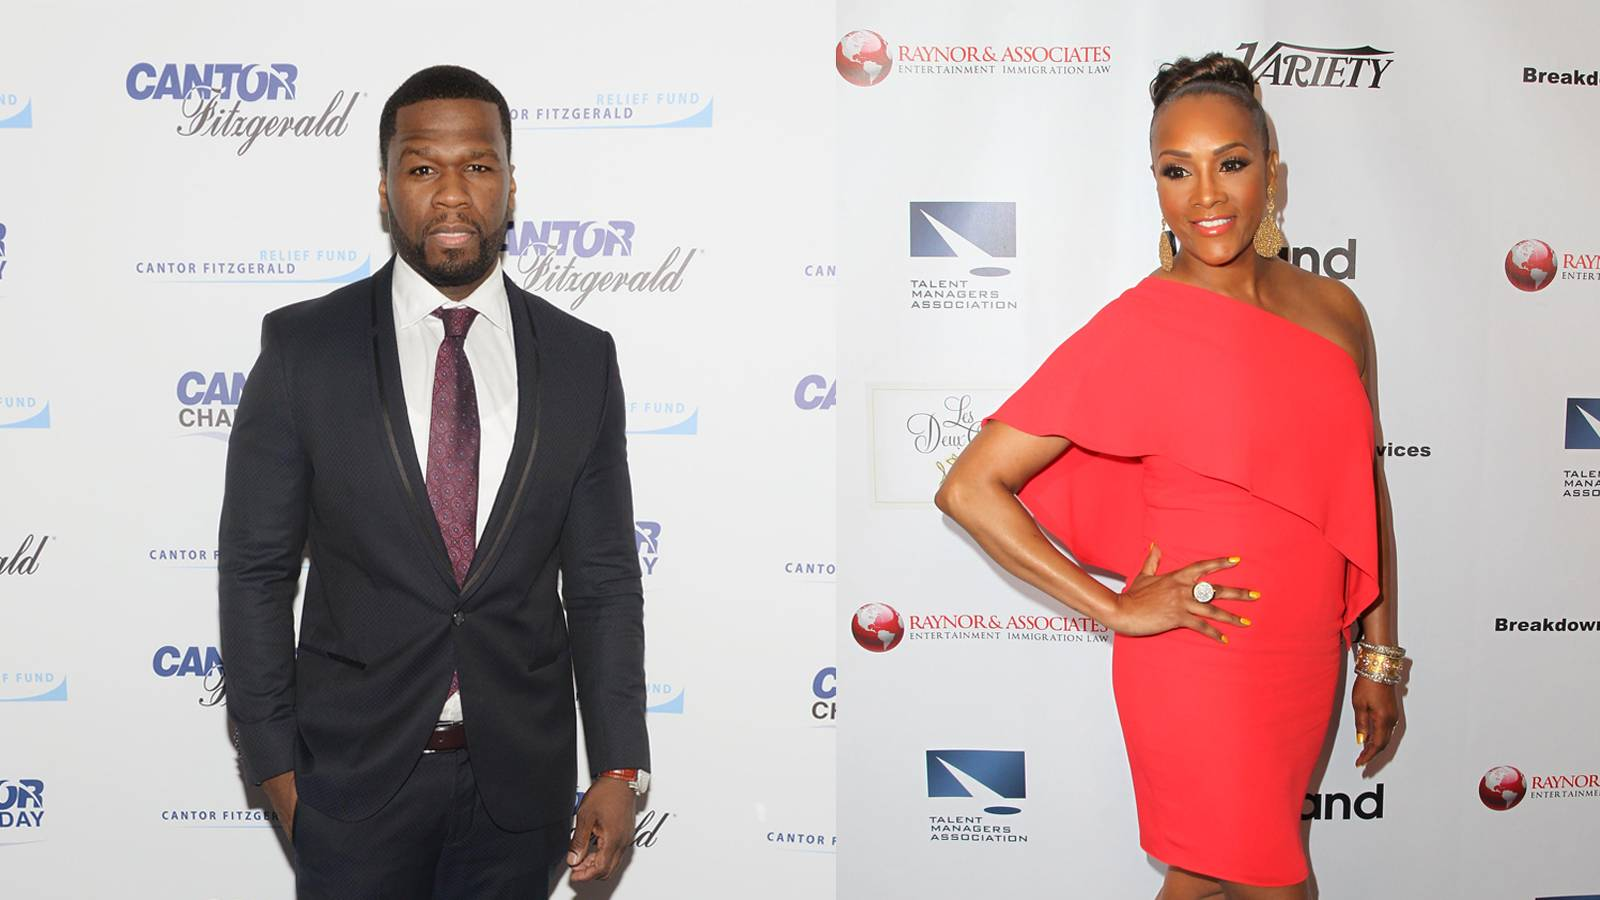 Bad Blood - When he's not ranting on Twitter about all the reasons Power is better than Empire, 50 Cent is trolling like nobody's business. King Petty Wap himself has no problem clapping back, and last night's attack on Vivica A. Fox proved his chill is non-existent. In honor of 50's very shady ways, lets revisit his best beefs with his high profile exes. —George Chapman Jr.(Photos from left: Noam Galai/Getty Images for Cantor Fitzgerald, David Buchan/Getty Images)